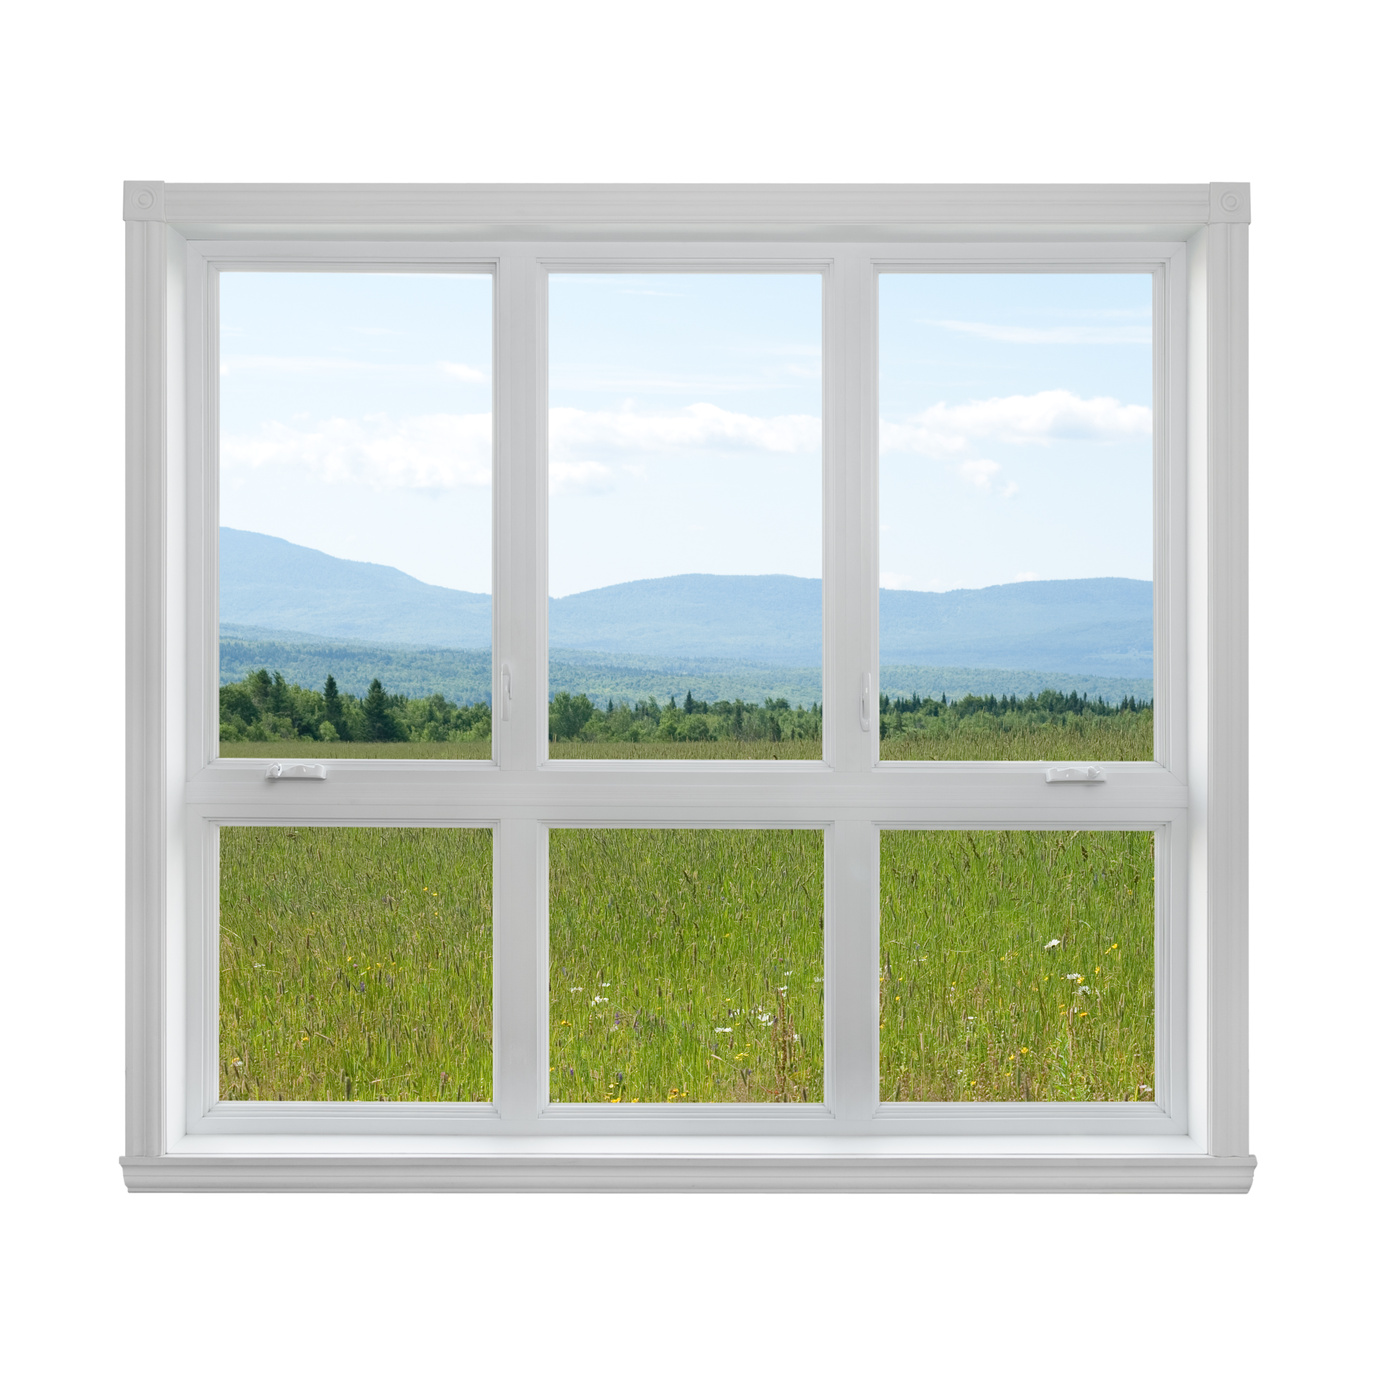 Energy efficient windows window types energy efficient windows tualatin or solar heat gain - The basics about energy efficient windows ...